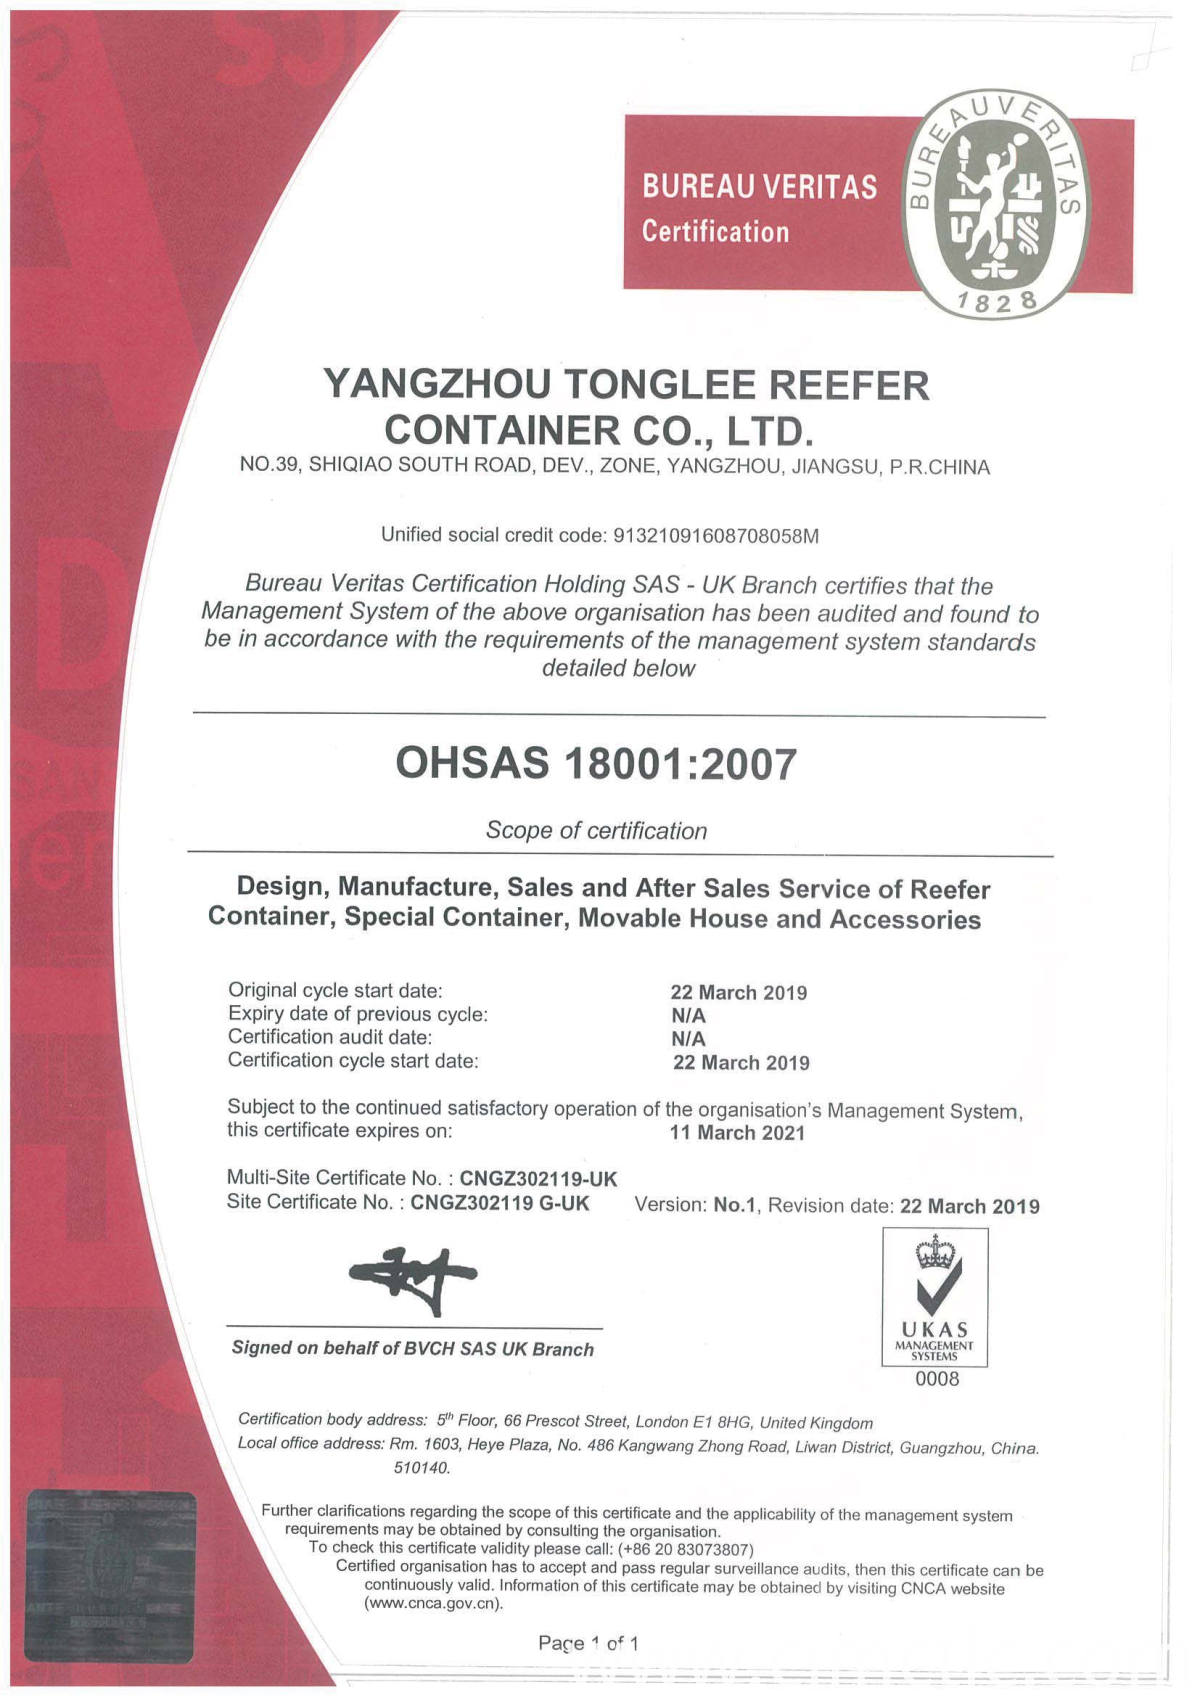 OSHAS 18001 certification for Electric Control Container Integration